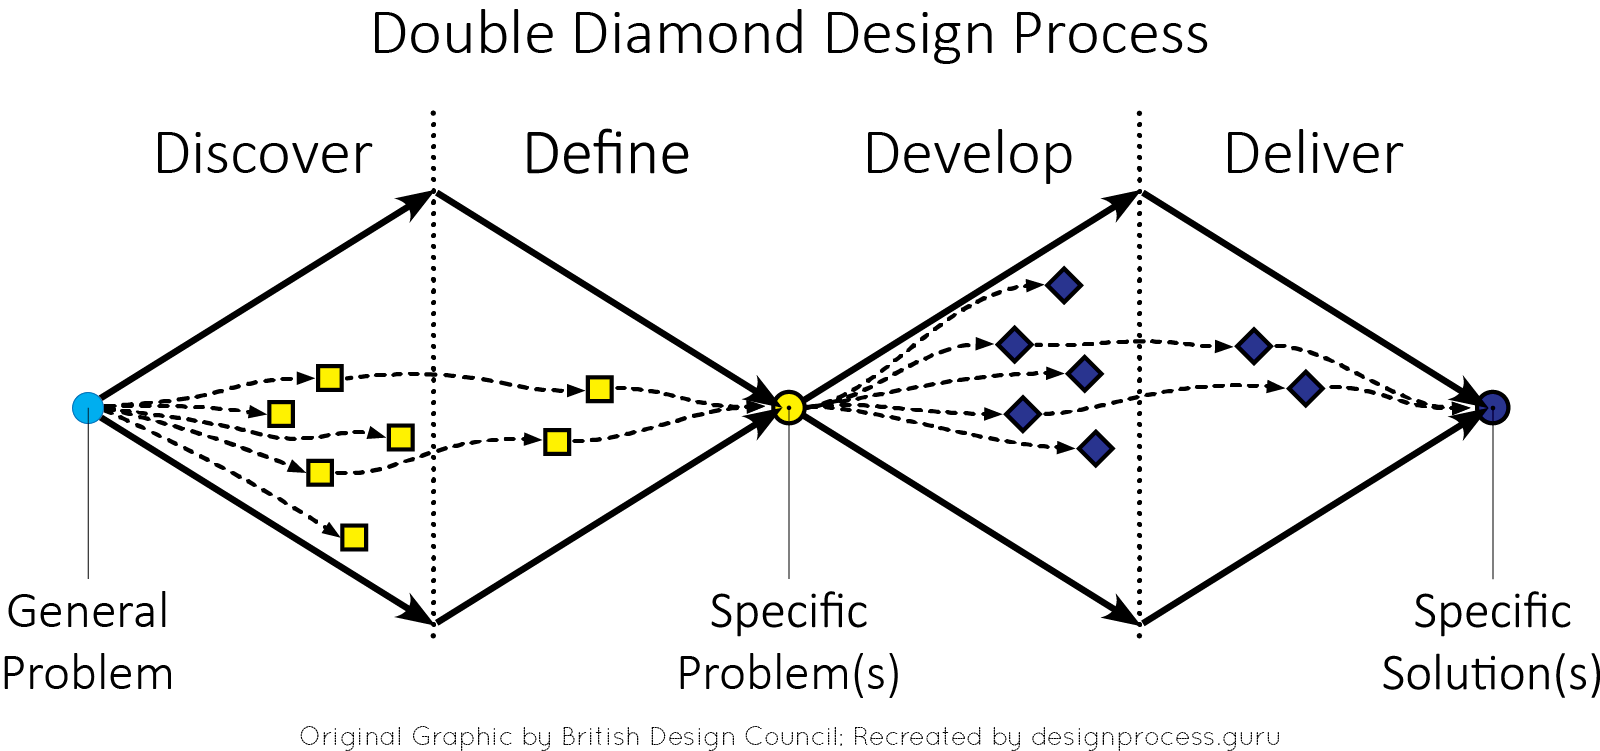 British Design Council's Double Diamond Design Process